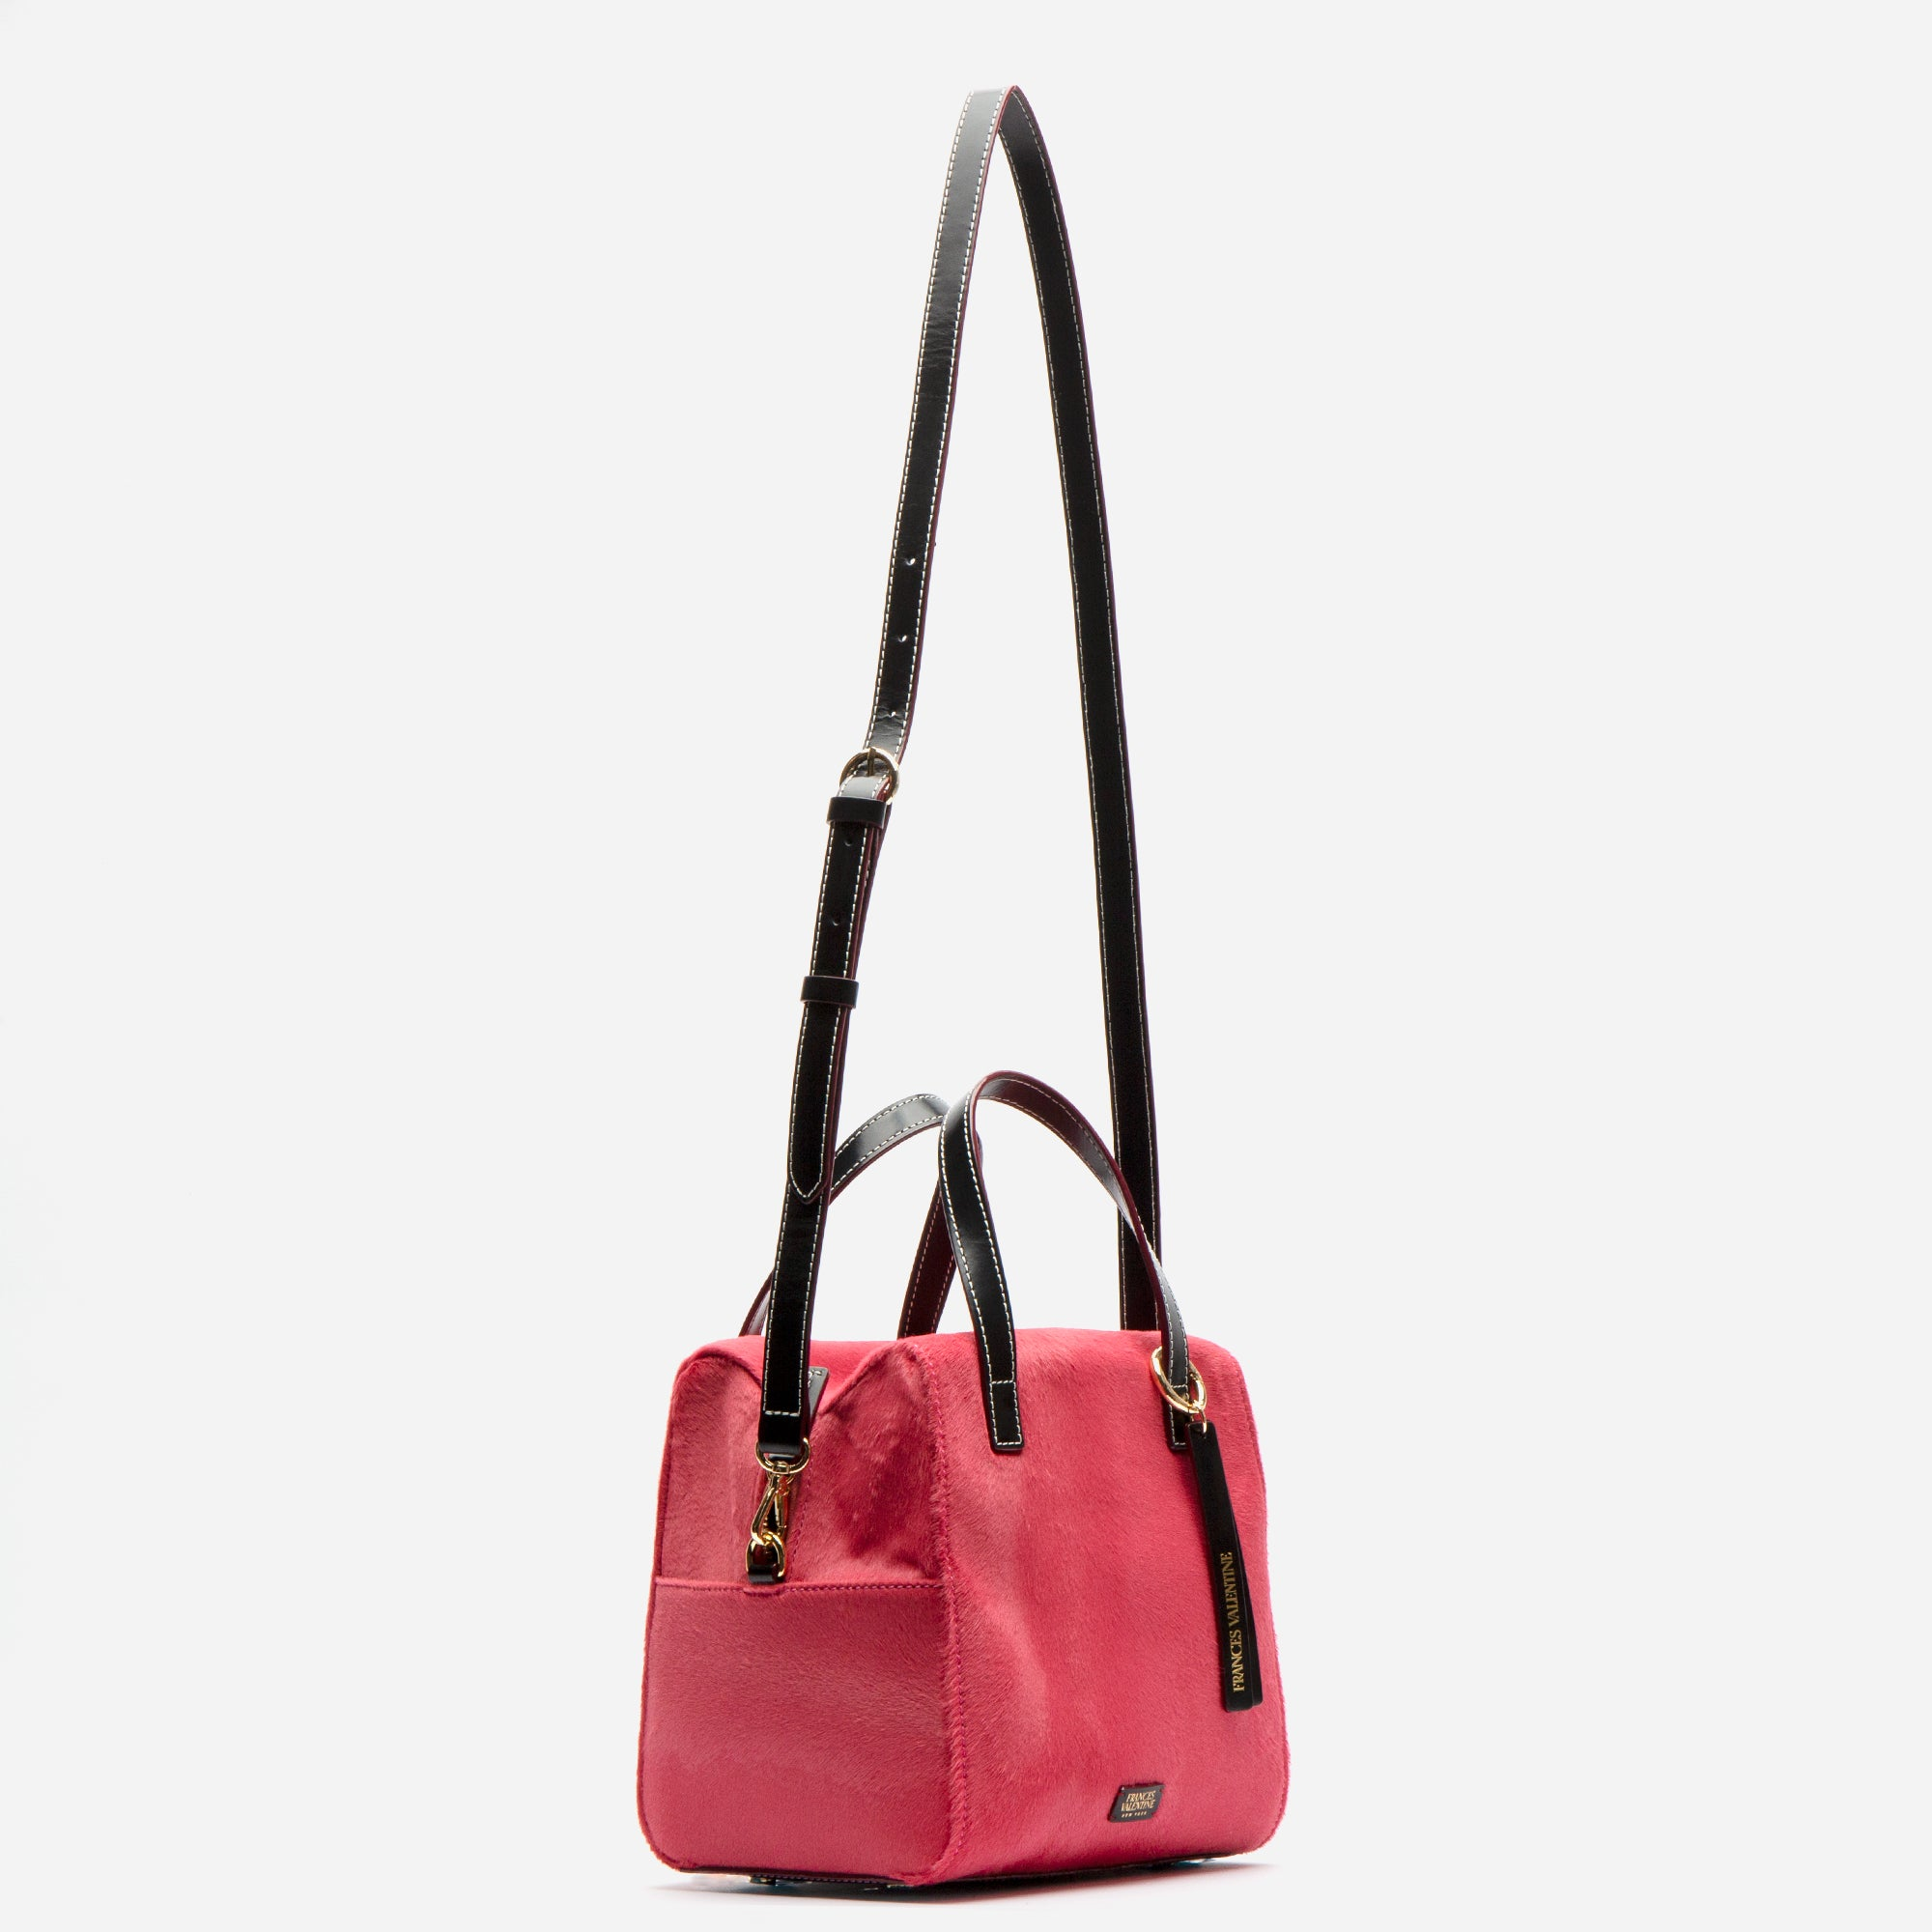 Sabrina Satchel Pink Haircalf